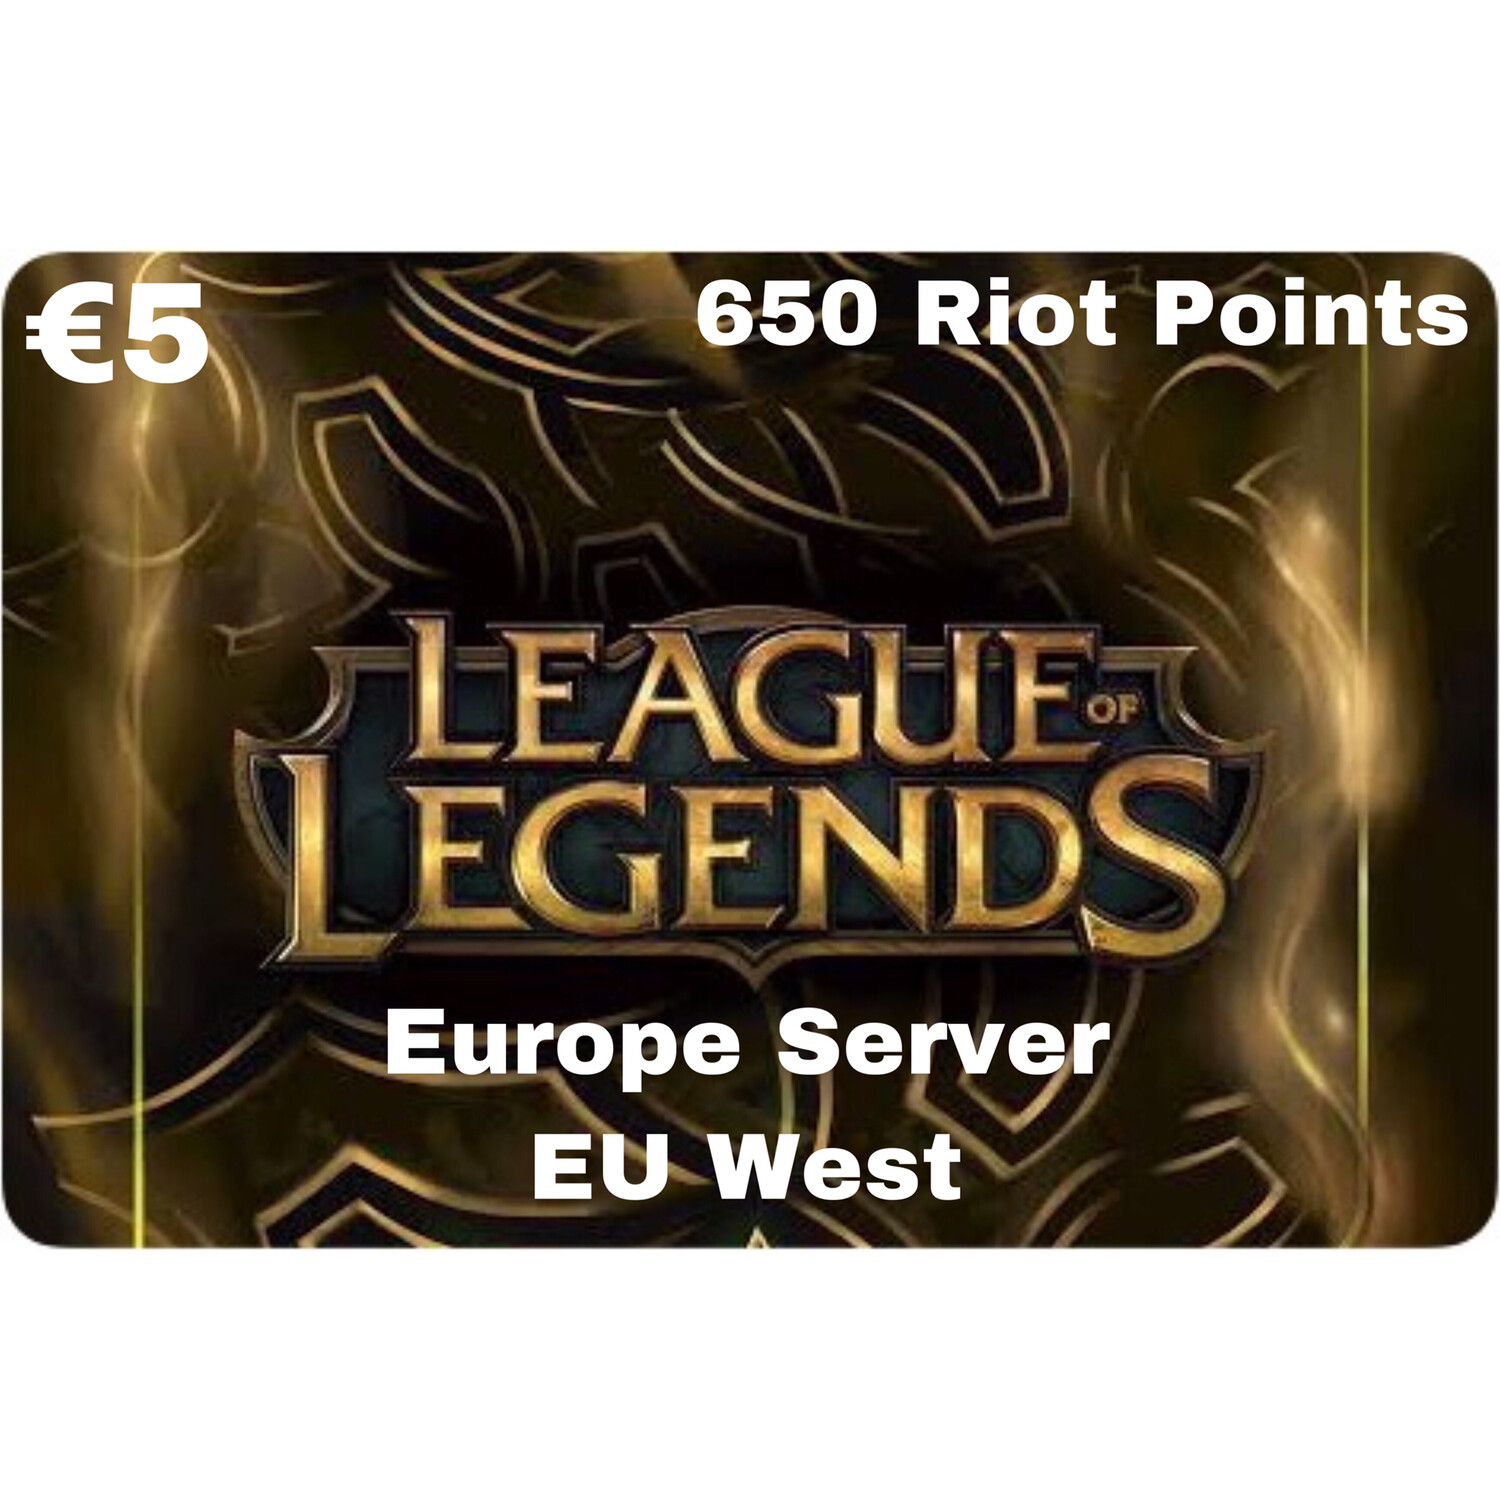 League of Legends €5 Europe Server 650 Riot Points EU West